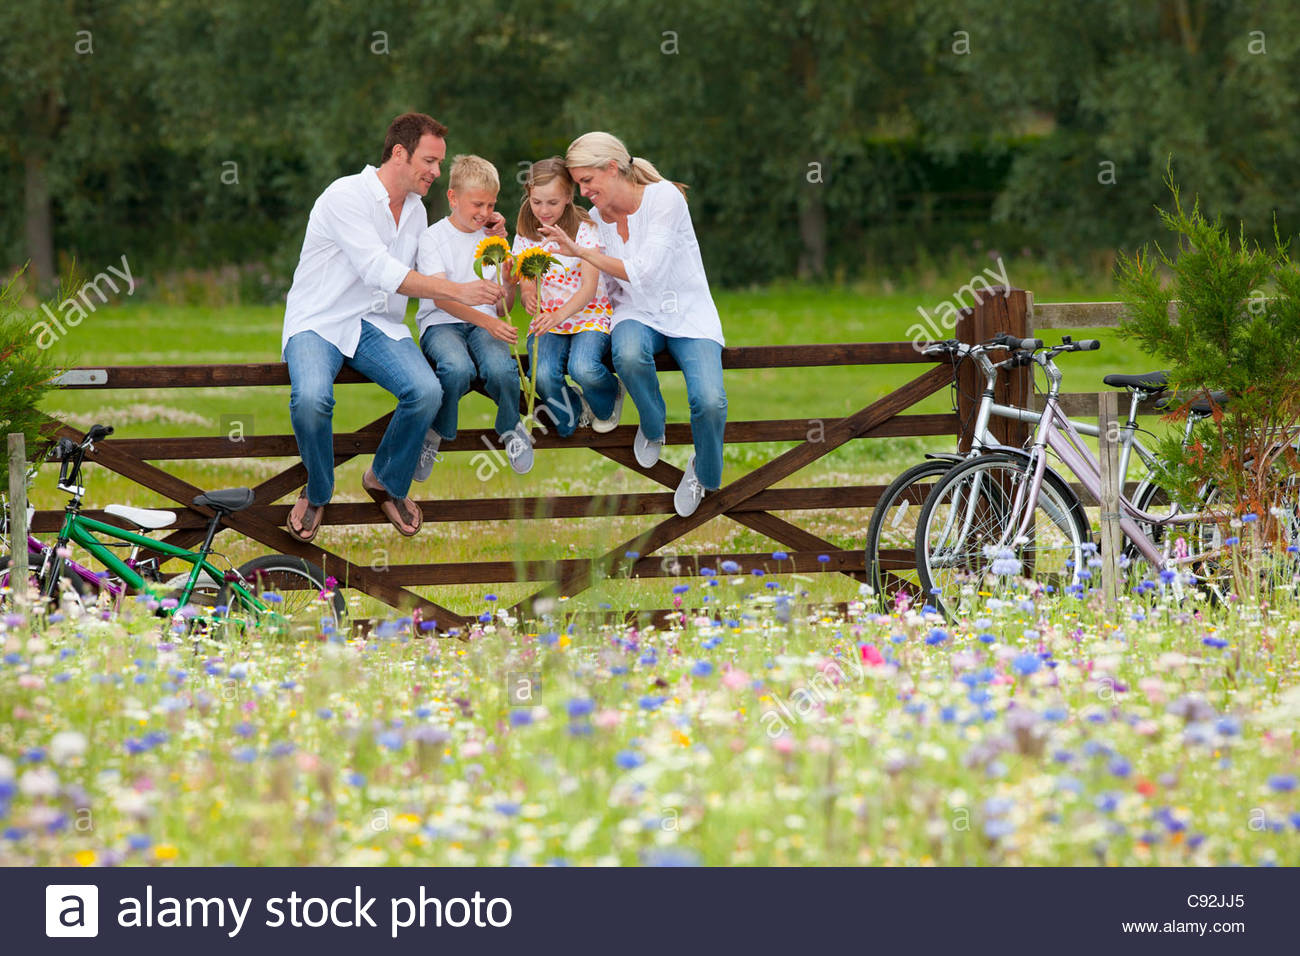 Family with bicycles sitting on fence and looking at sunflowers in wildflower field Stock Photo